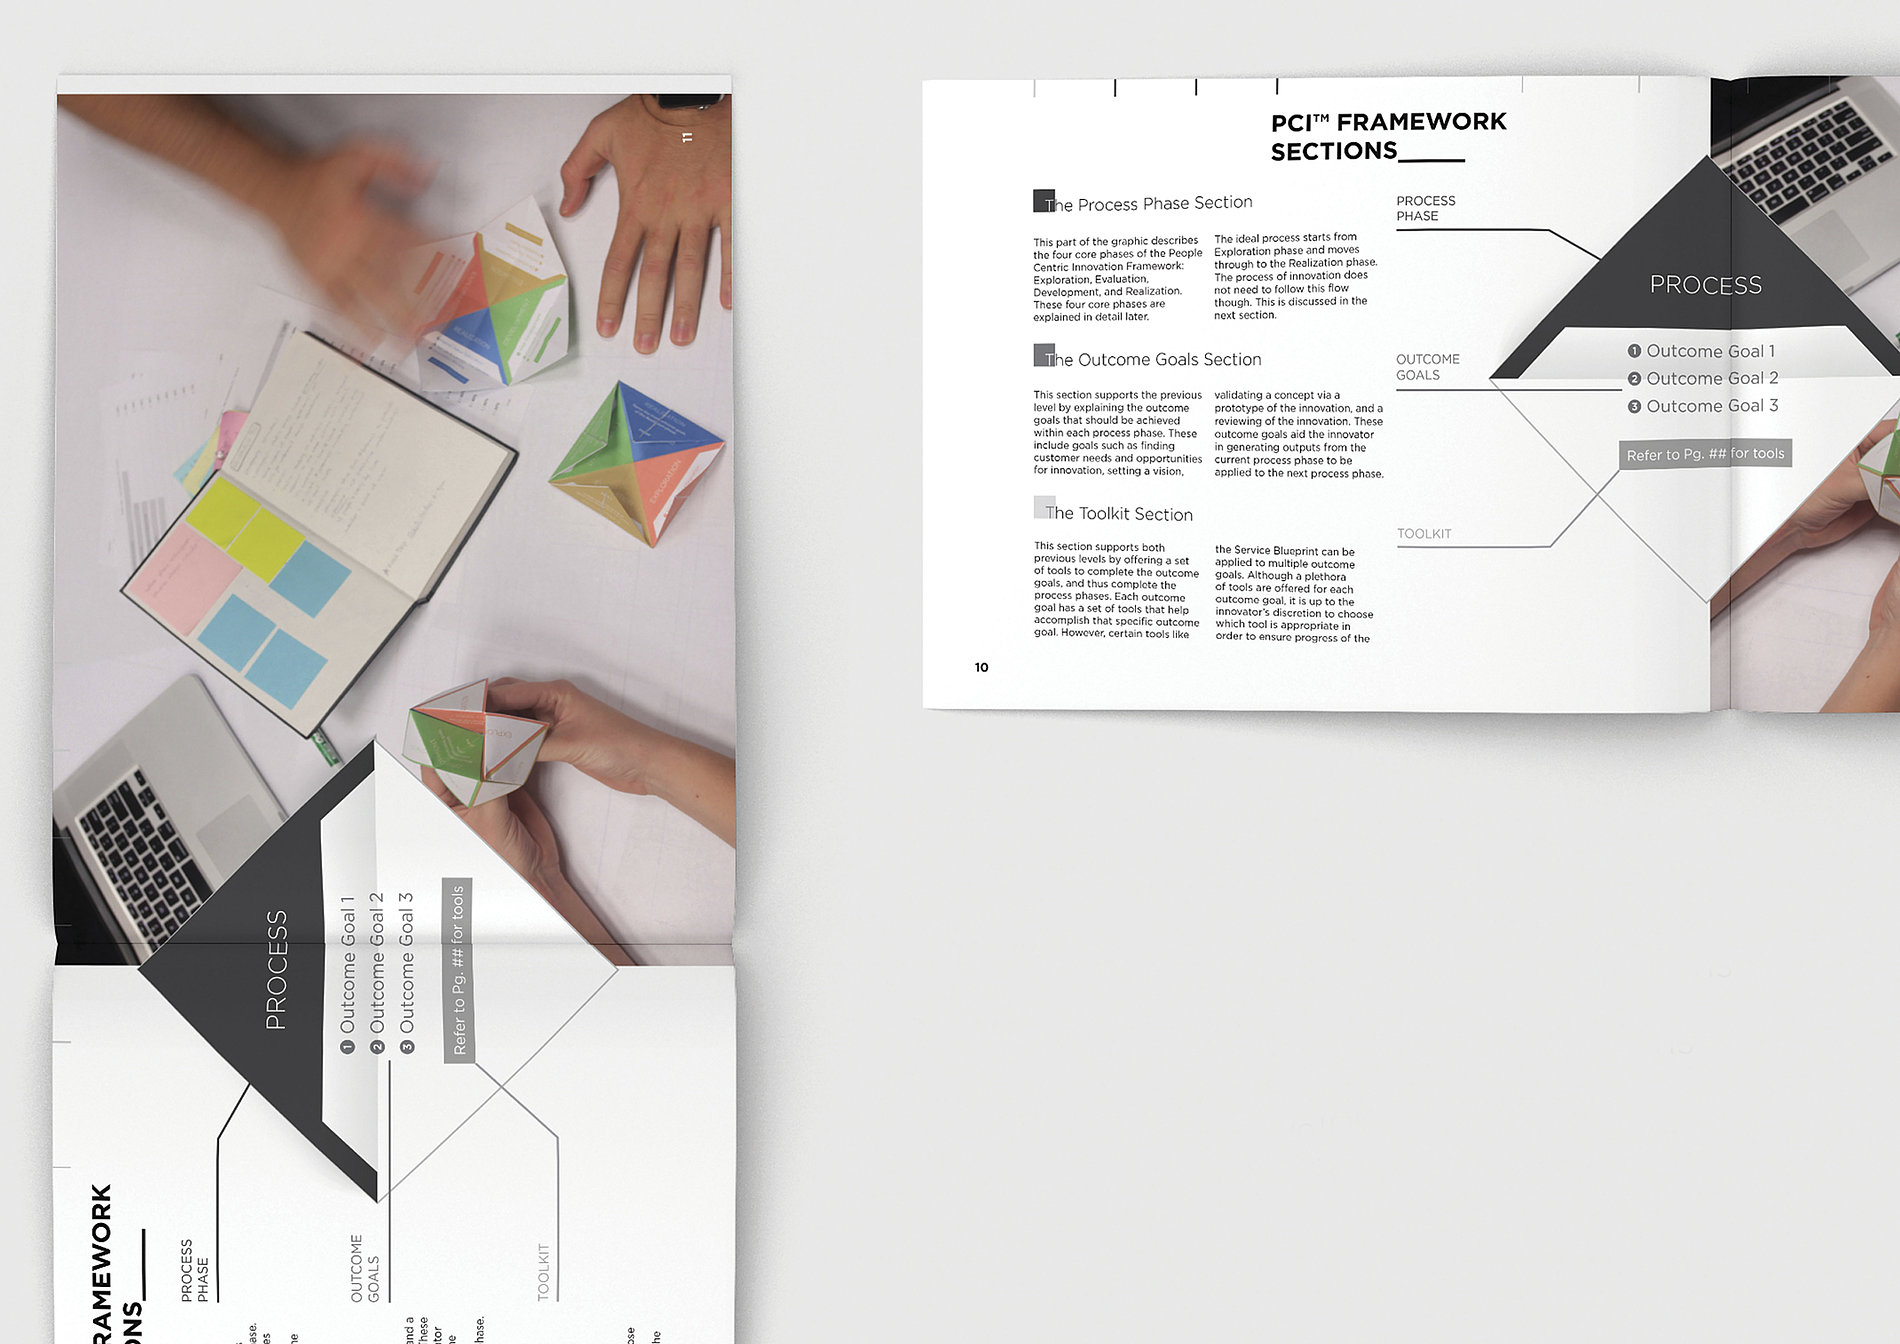 PCI People Centered Innovation Playbook ISSIP | Red Dot Design Award